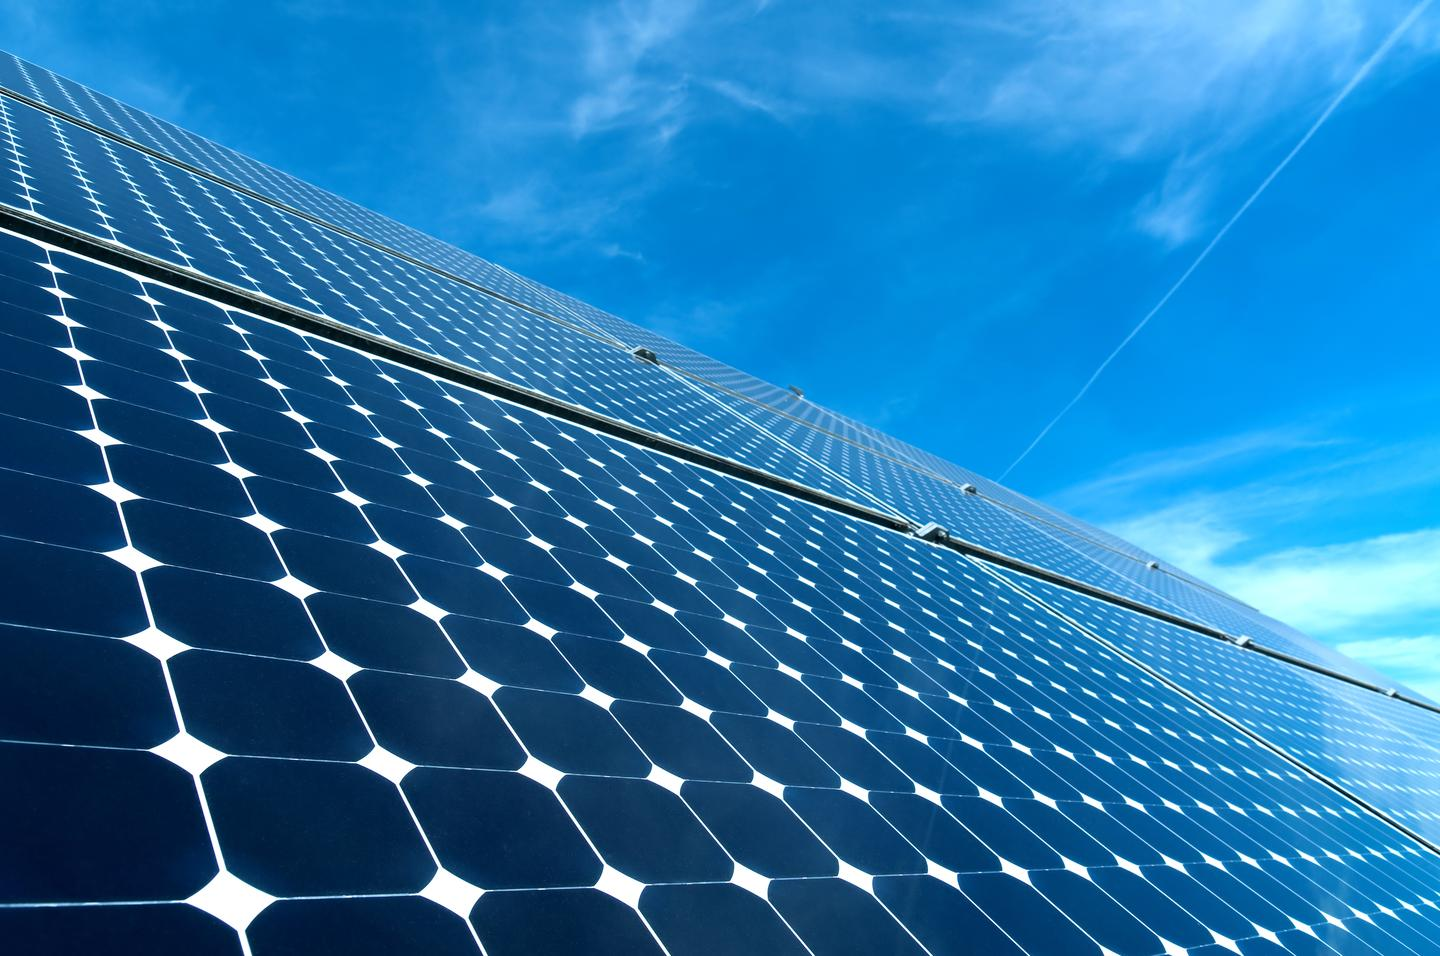 Silicon solar cells in use today rely on silver, but an Australian startup is showing how cheaper and more abundant copper could offer a more sustainable pathway forward